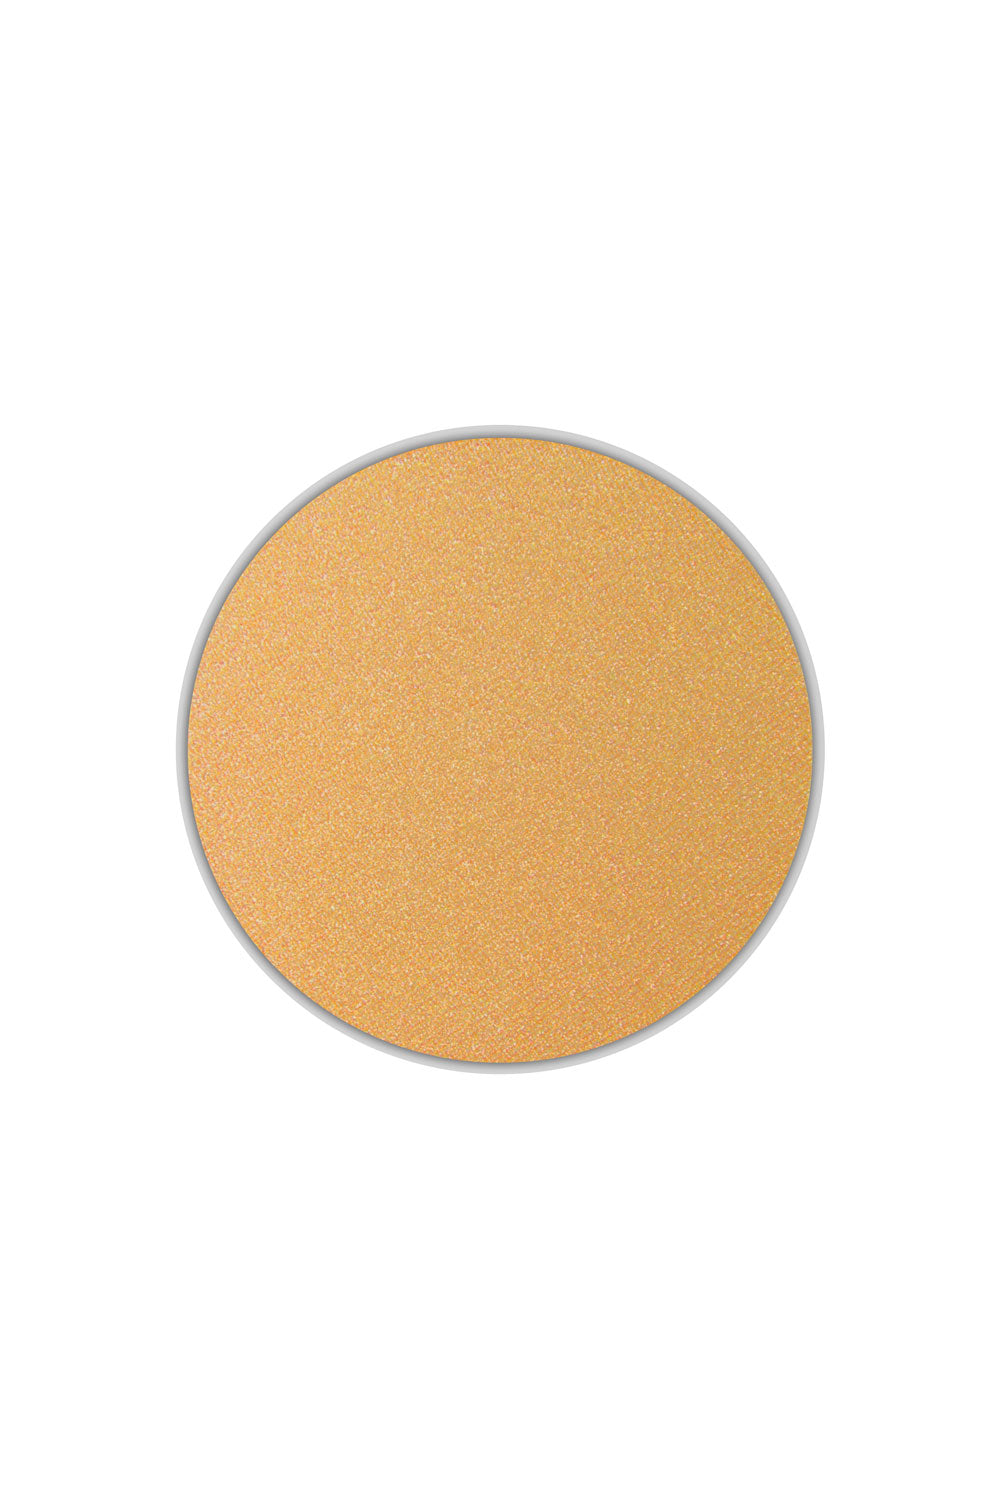 Type 3 Eyeshadow - Shiny Gold